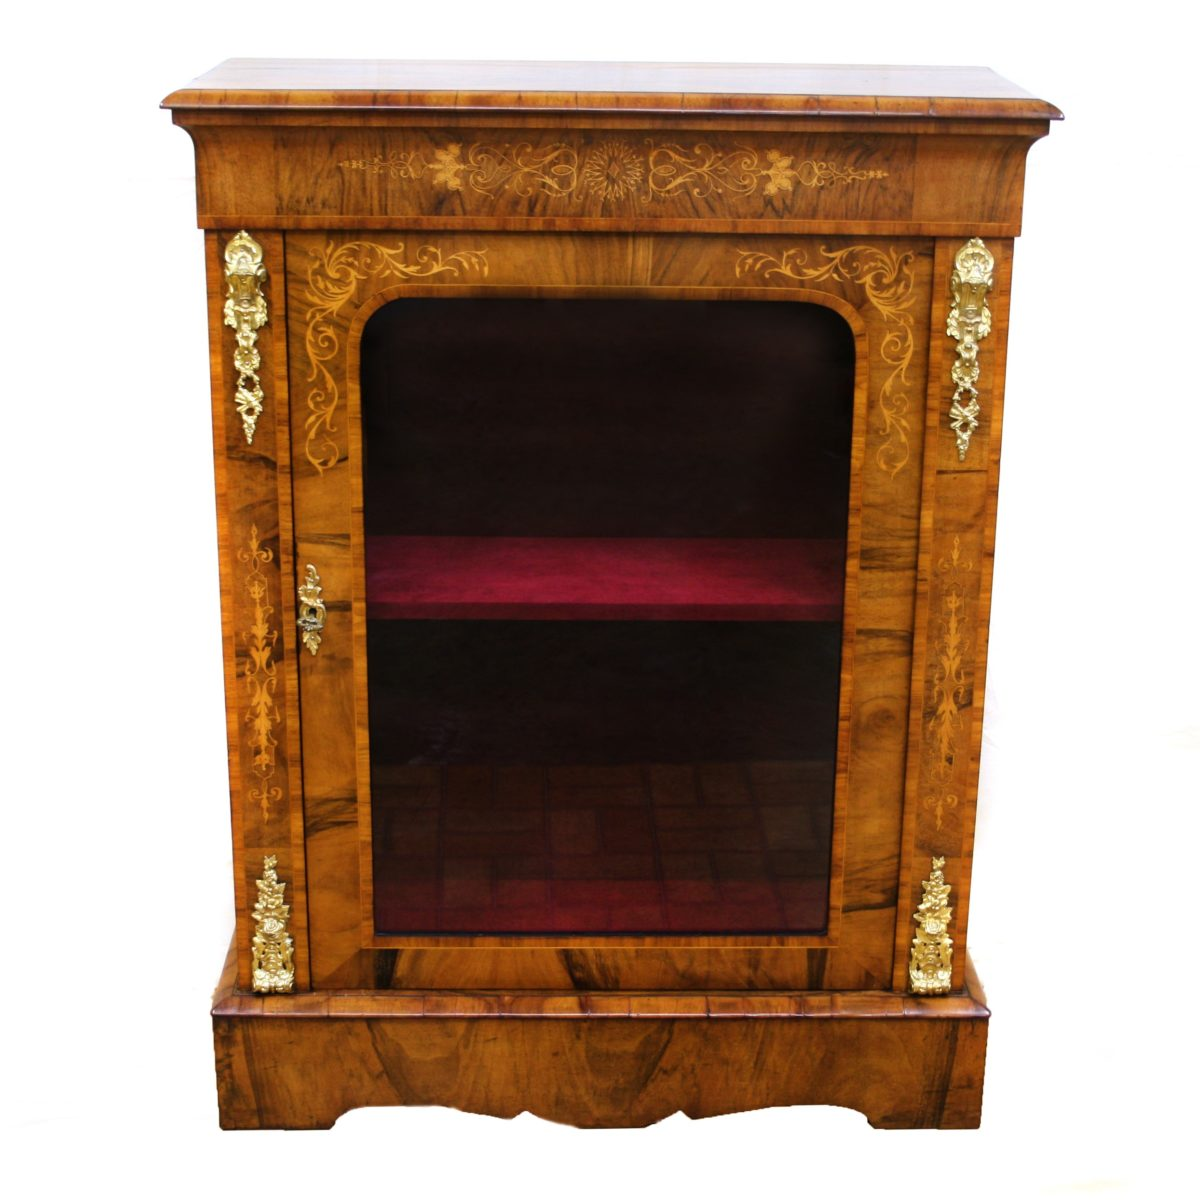 Victorian inlaid walnut pier cabinet/williamsantiques